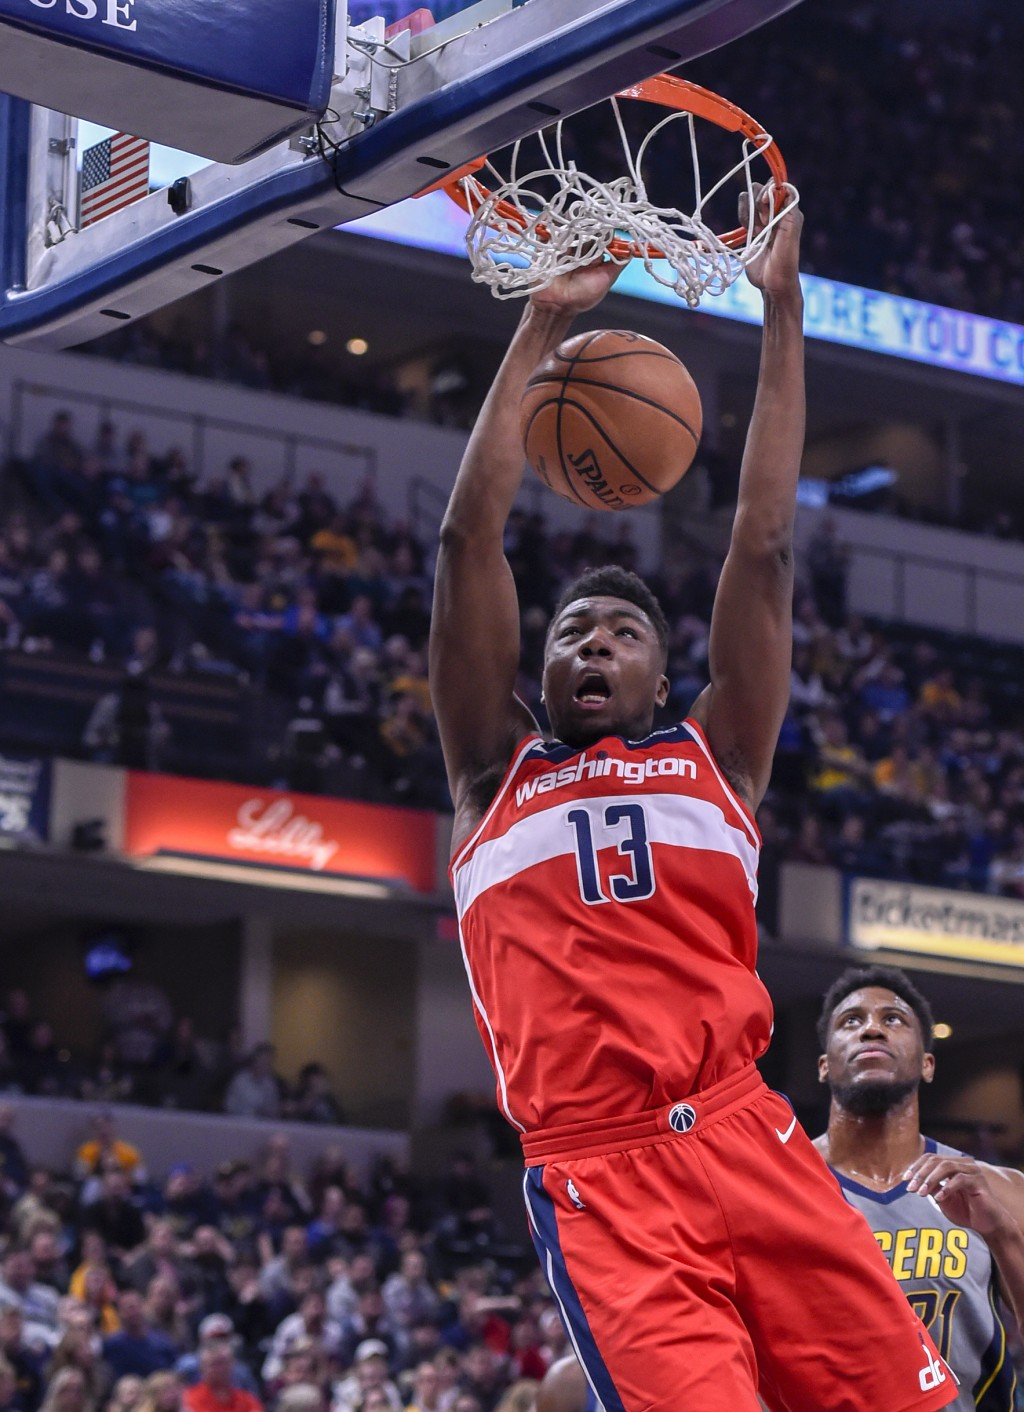 Washington Wizards center Thomas Bryant (13) slam-dunks the ball during an NBA basketball game against the Indiana Pacers, Sunday, Dec. 23, 2018, in I...